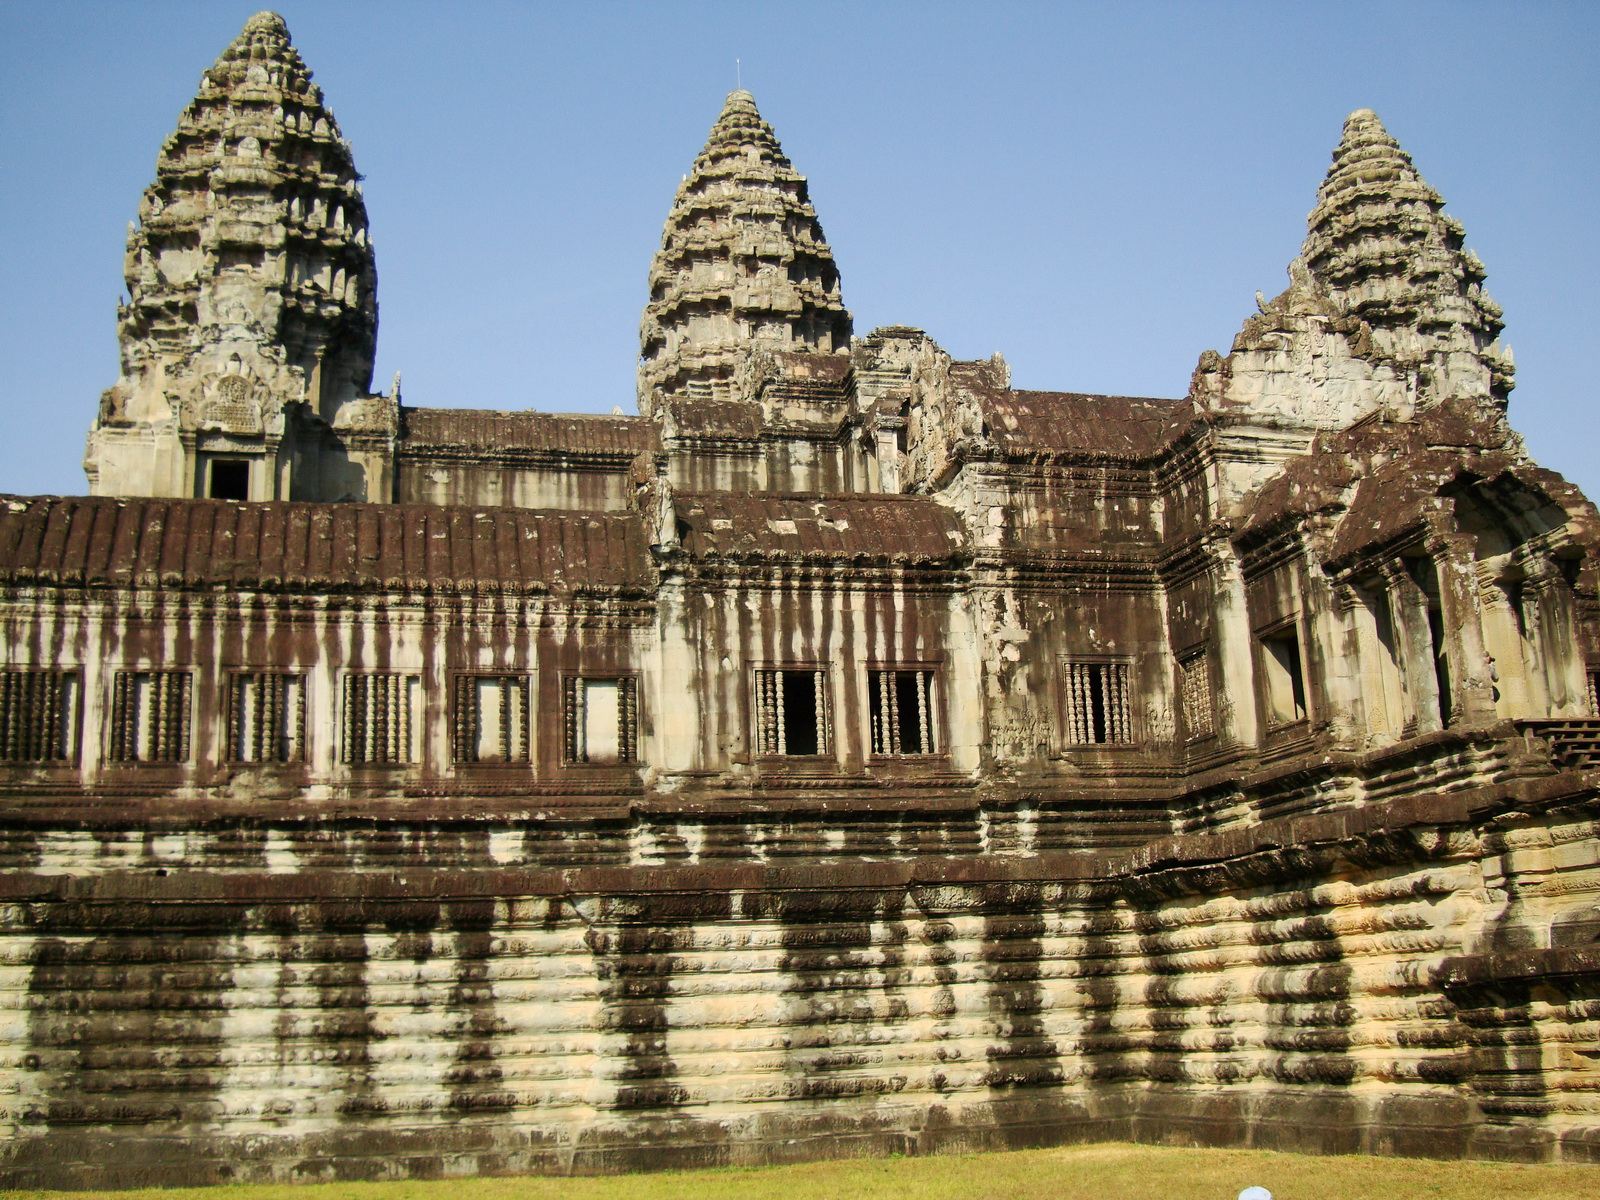 Angkor Wat Khmer architecture internal gallery E entrance 05